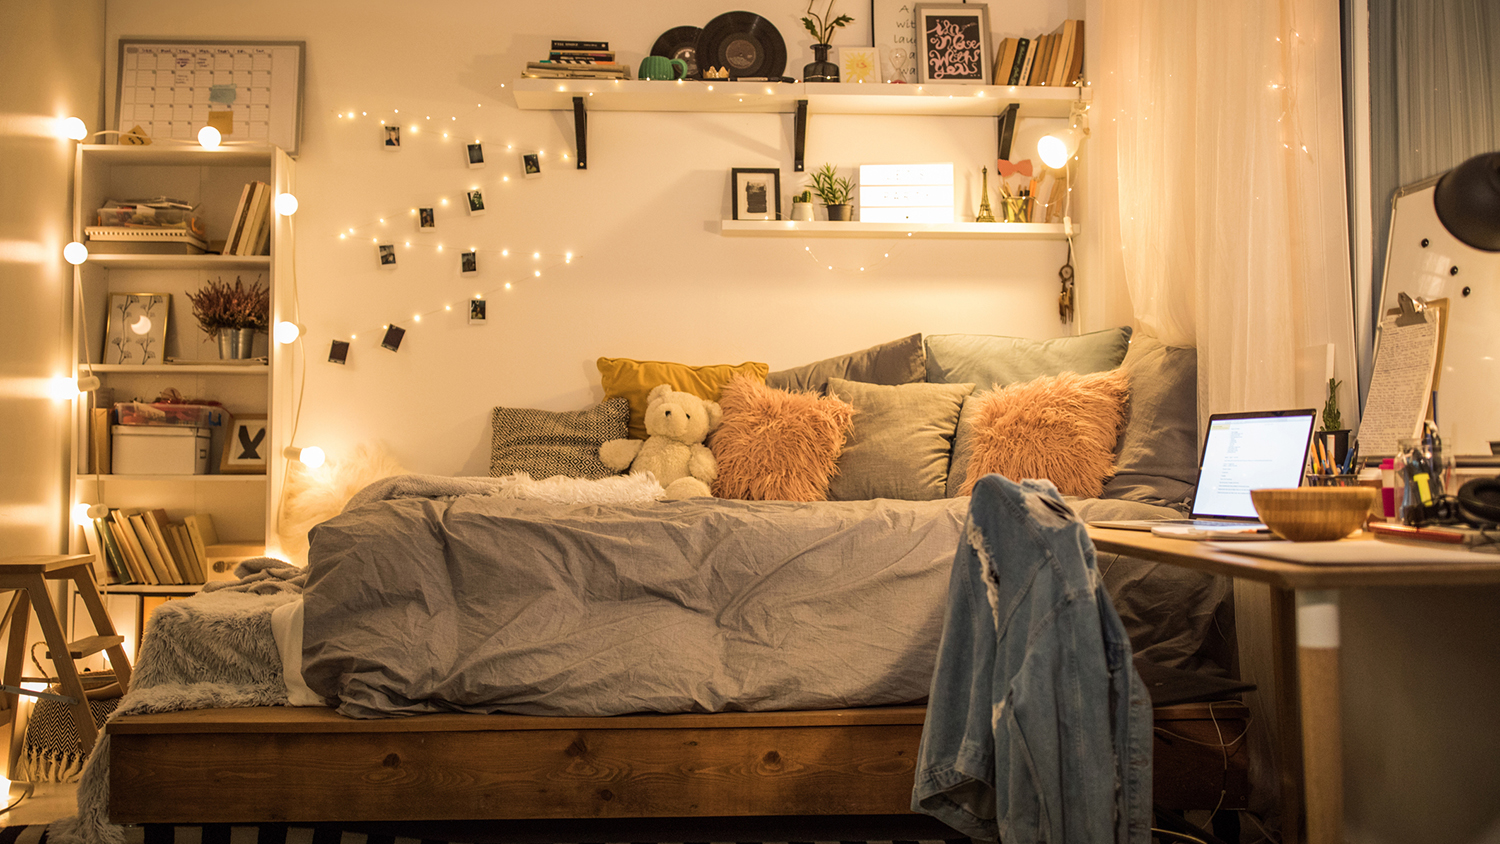 10 Dorm Room Essentials Every College-Bound Kid Needs This Year